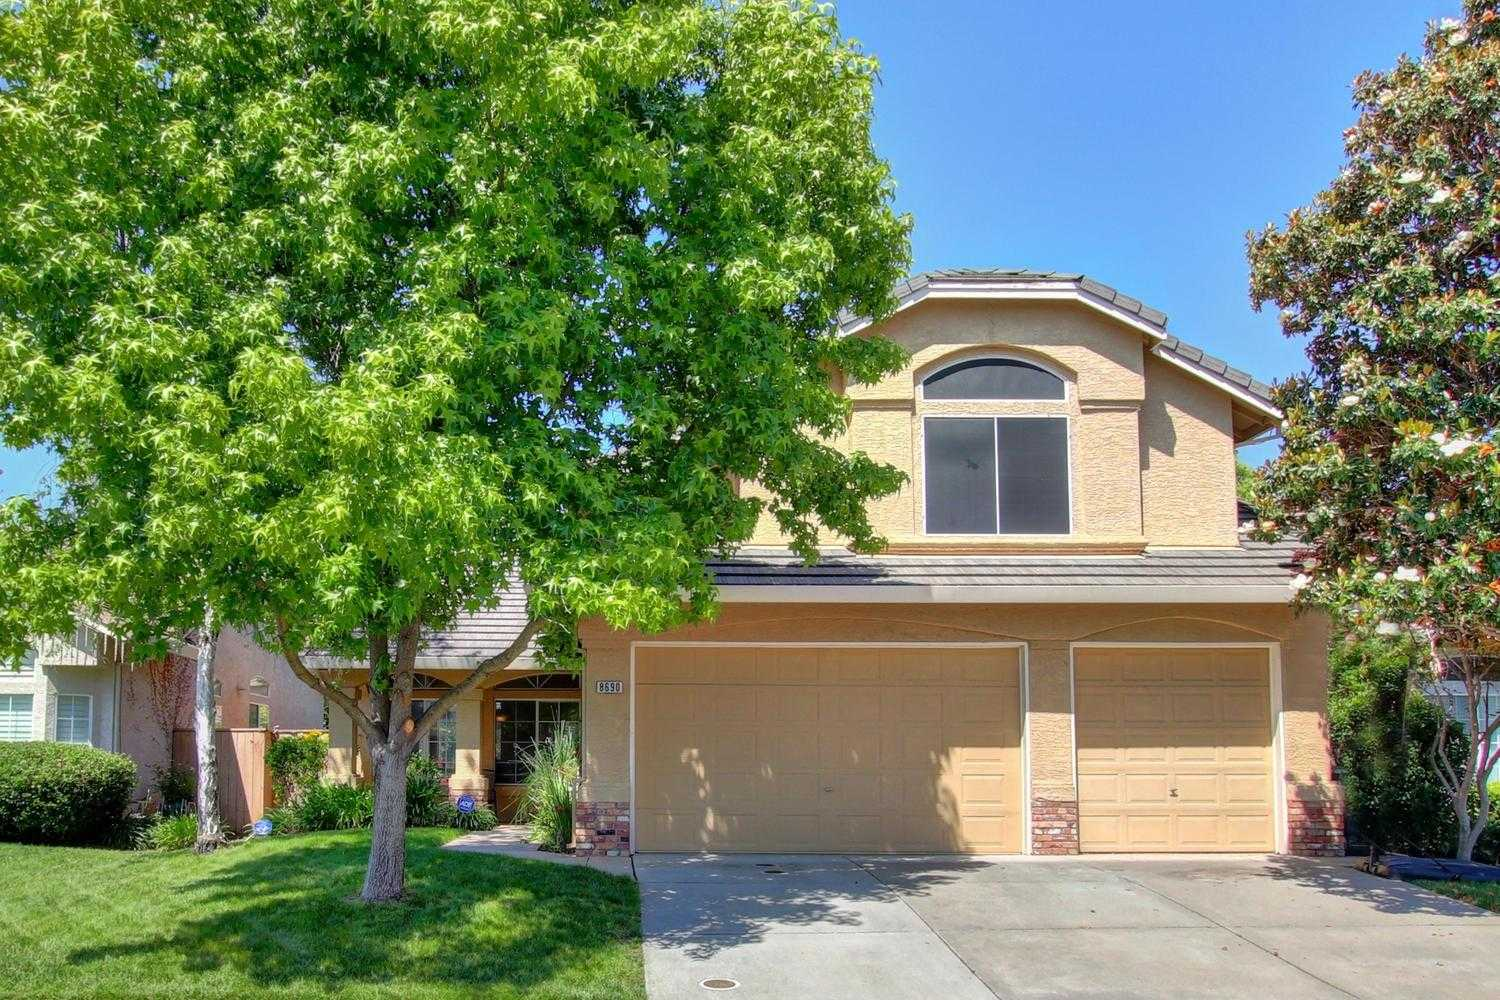 8690 White Peacock Way Elk Grove, CA 95624